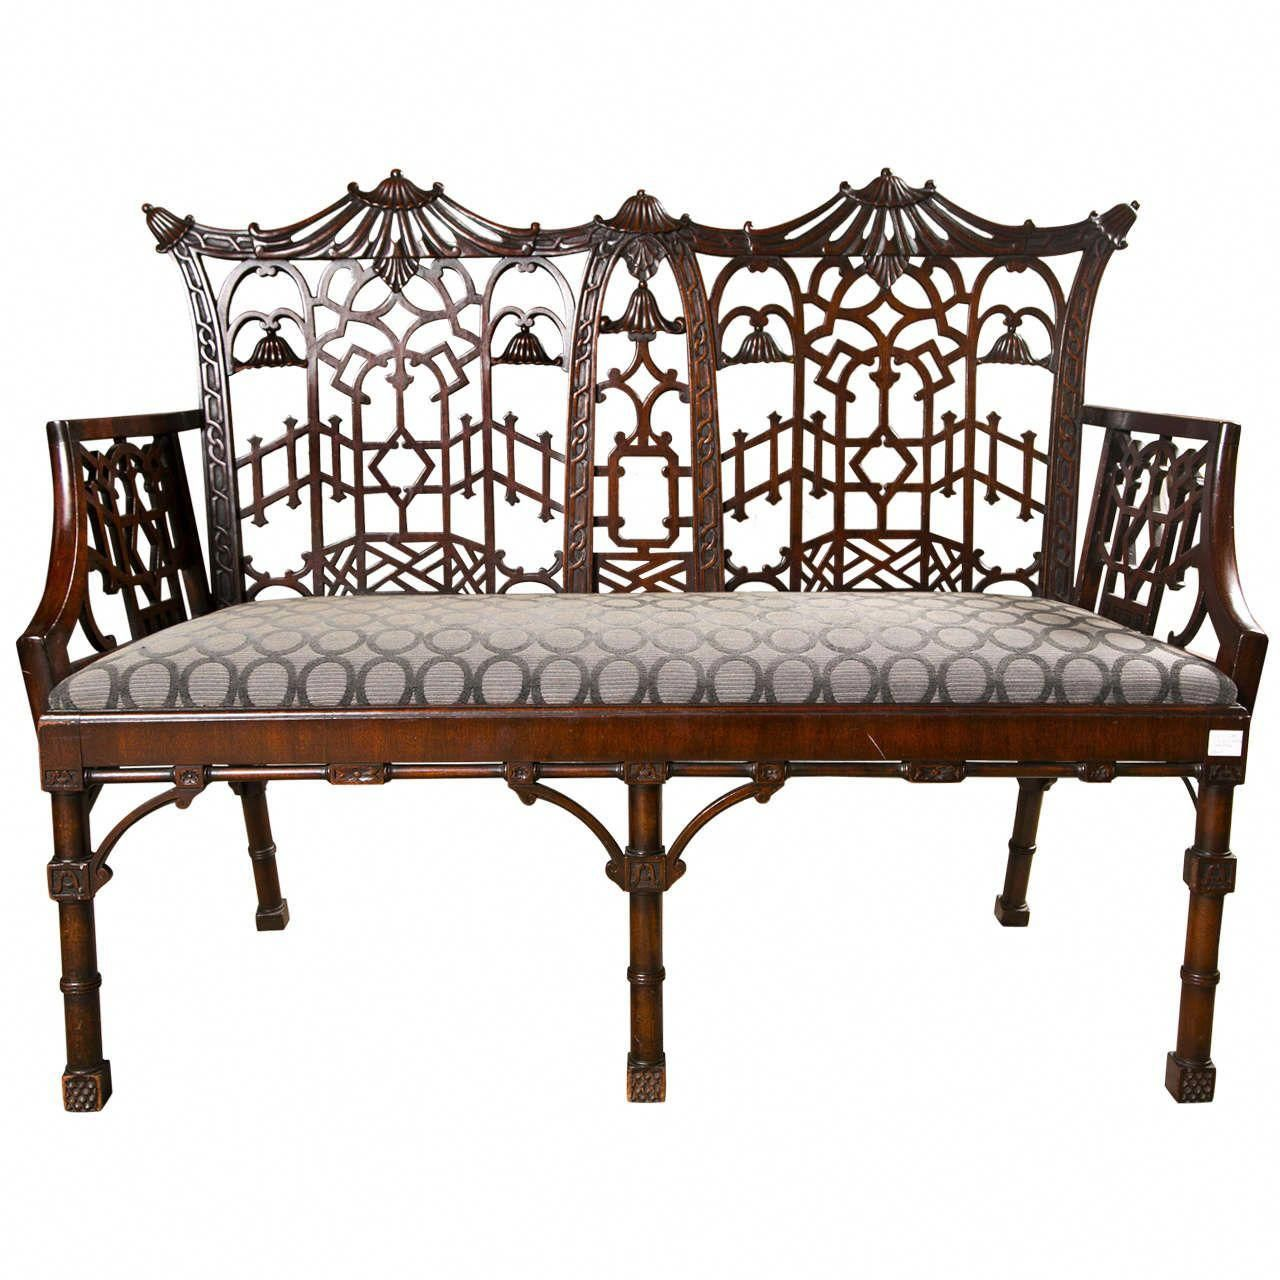 Full Size of Chippendale Sofa Slipcover History Lane Table Reproduction Sofas Ethan Allen Furniture For Sale Uk Style Cover Antique Chinese Settee Canape Kolonialstil Sofa Chippendale Sofa